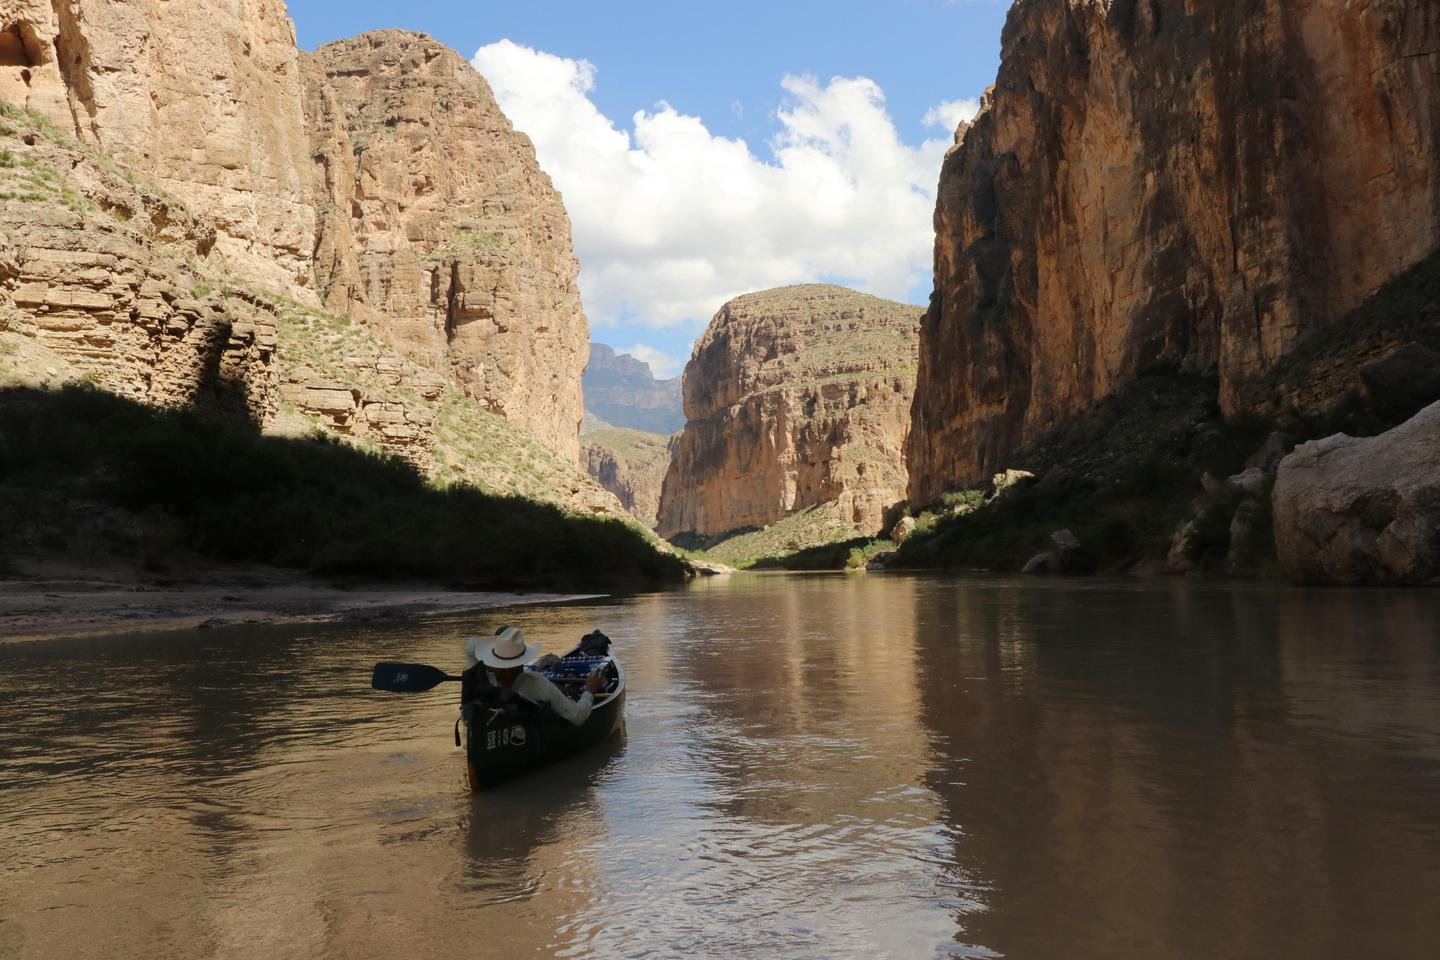 Canoeing Boquillas CanyonFloating through Boquillas Canon